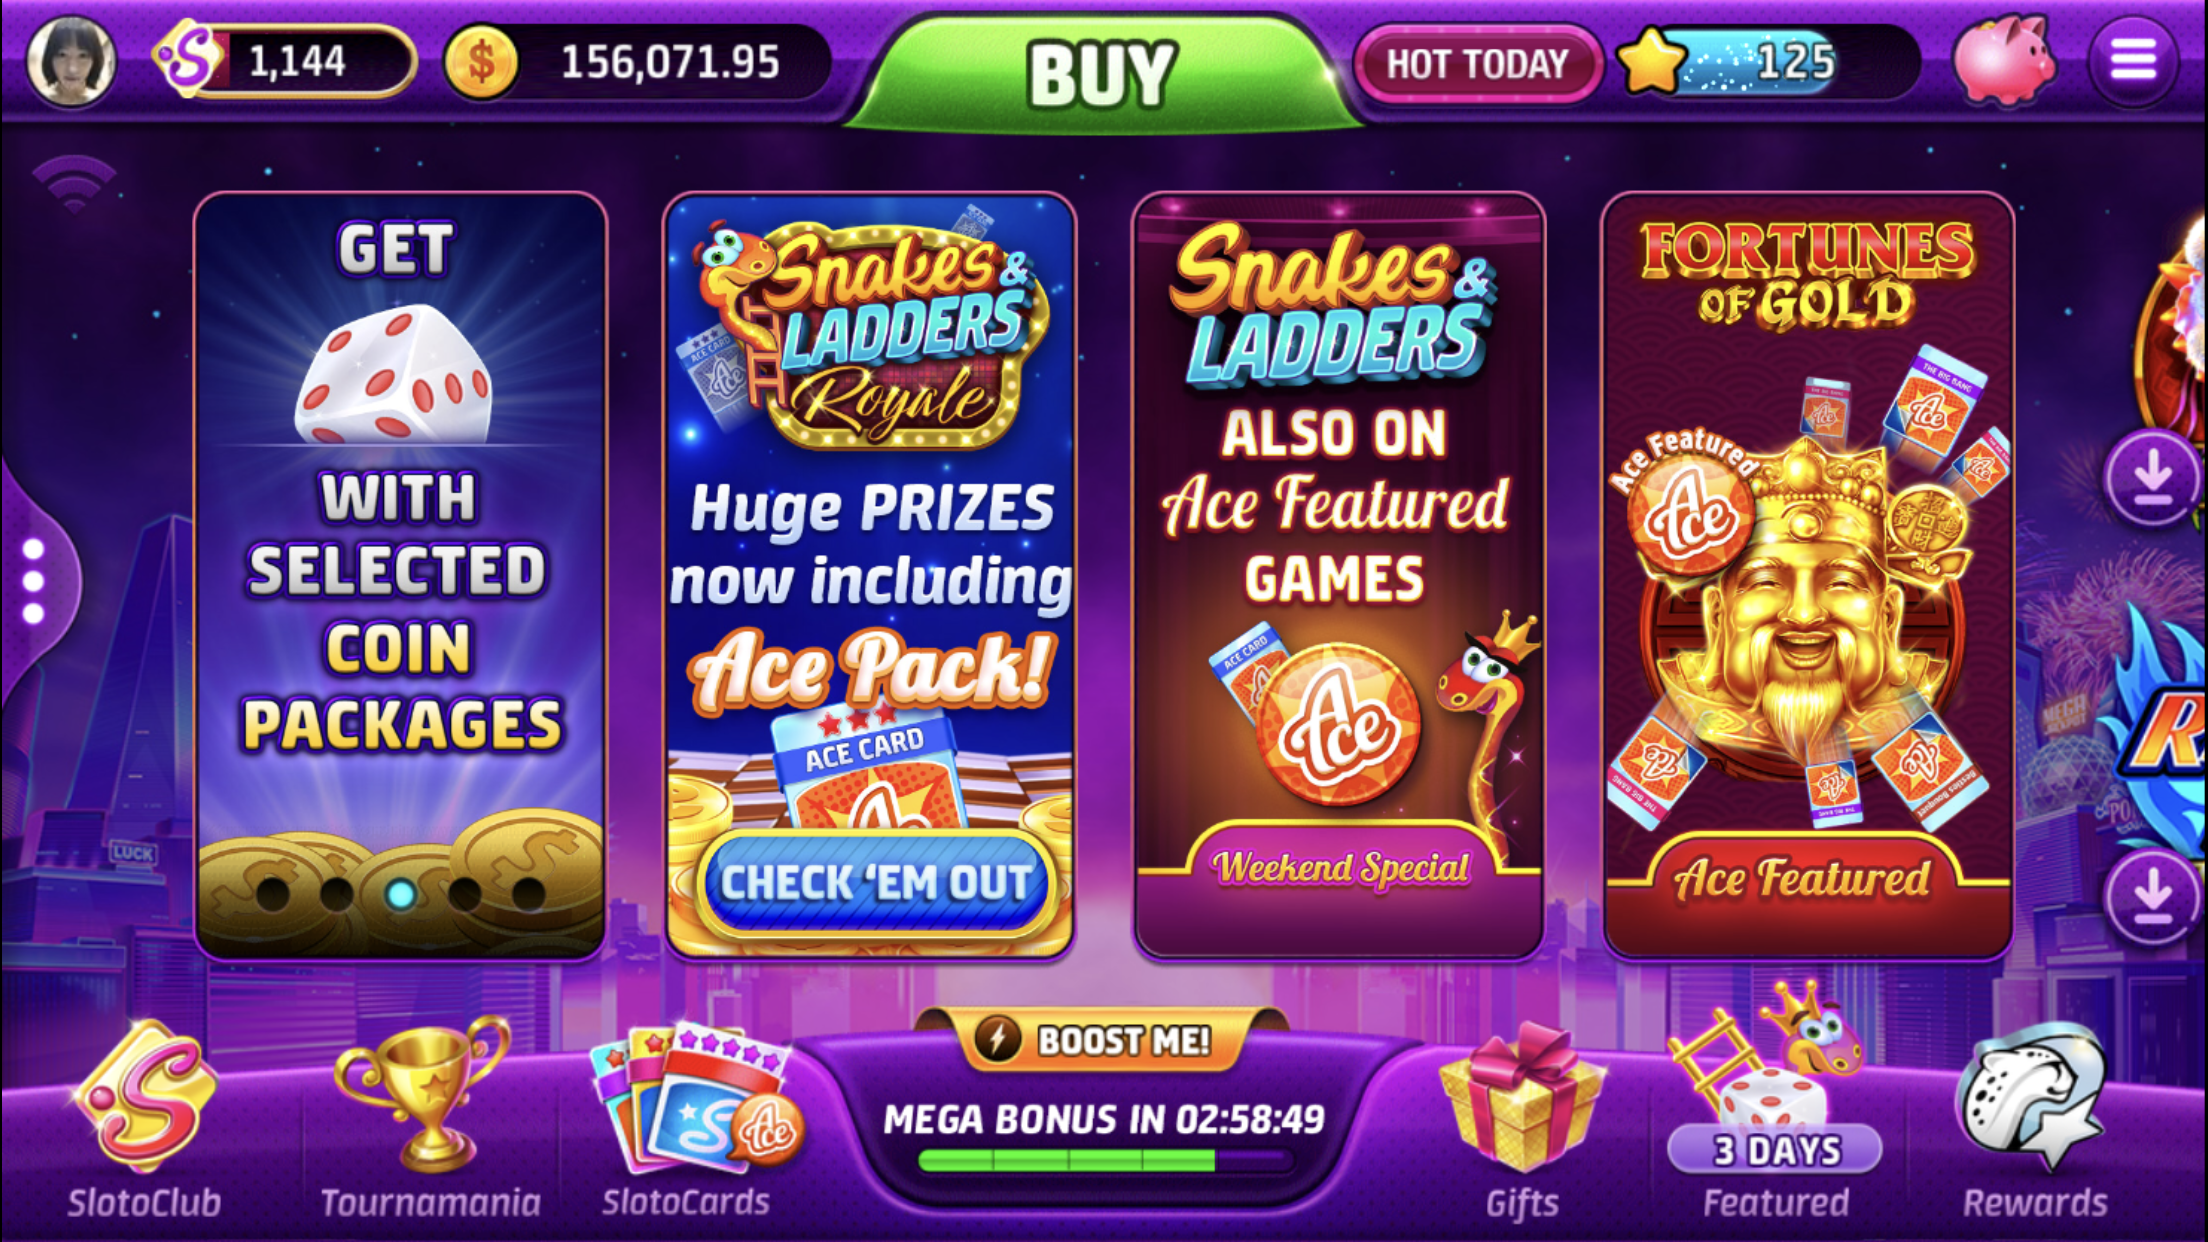 Baking day magnet gaming casino slots games nuts